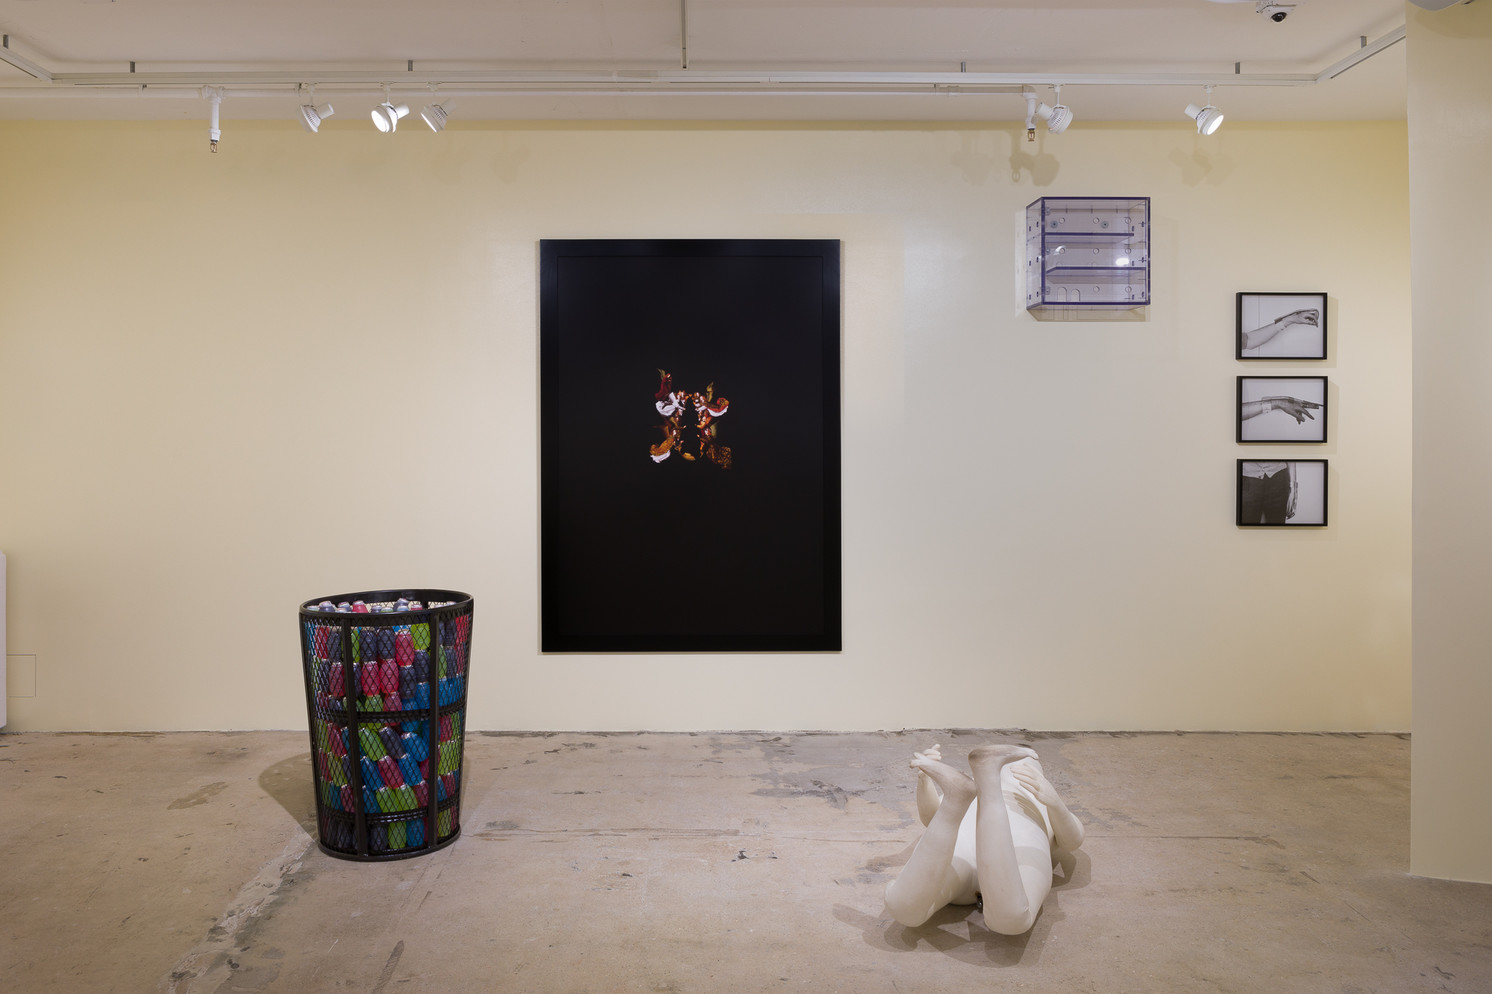 life and limbs, installation view. Far left: Diamond Stingily, Juice Drank, 2018. Trashcan, juice. Courtesy of Christina and Oscar Castellón, Miami. On wall, middle: Gina Folly, Magic Box IV, 2015. Polycarbonate, screws. Courtesy of the artist.